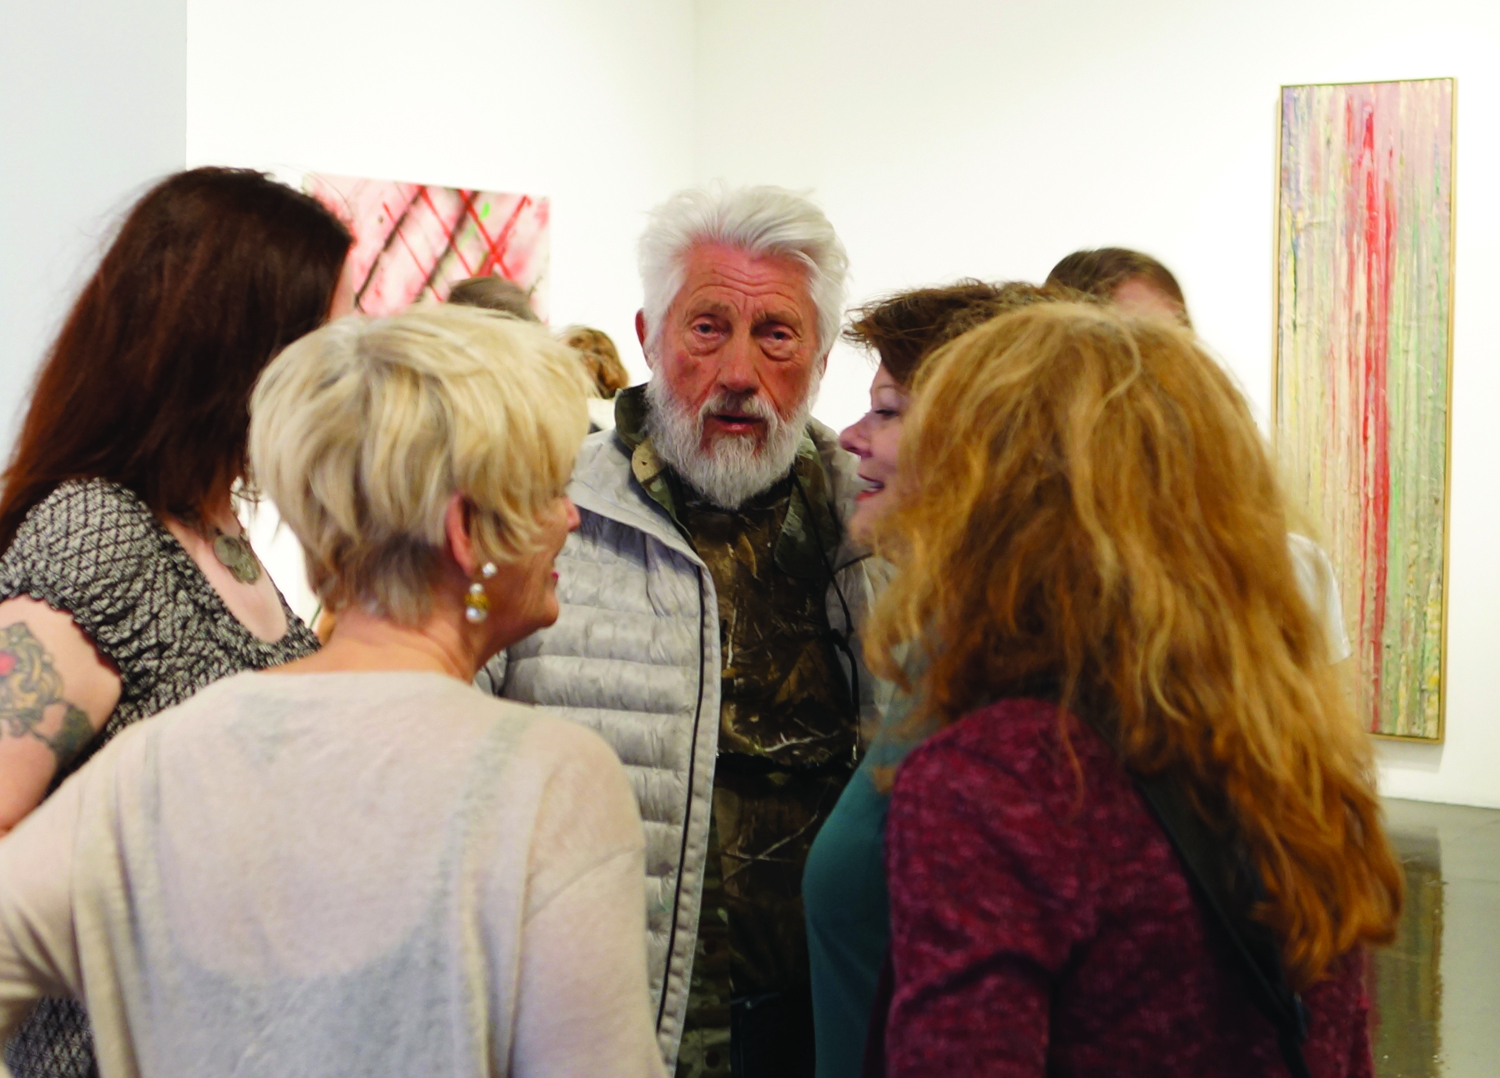 Ed Moses at his art opening at William Turner gallery, surrounded by admirers. Photo by Lynda Burdick.